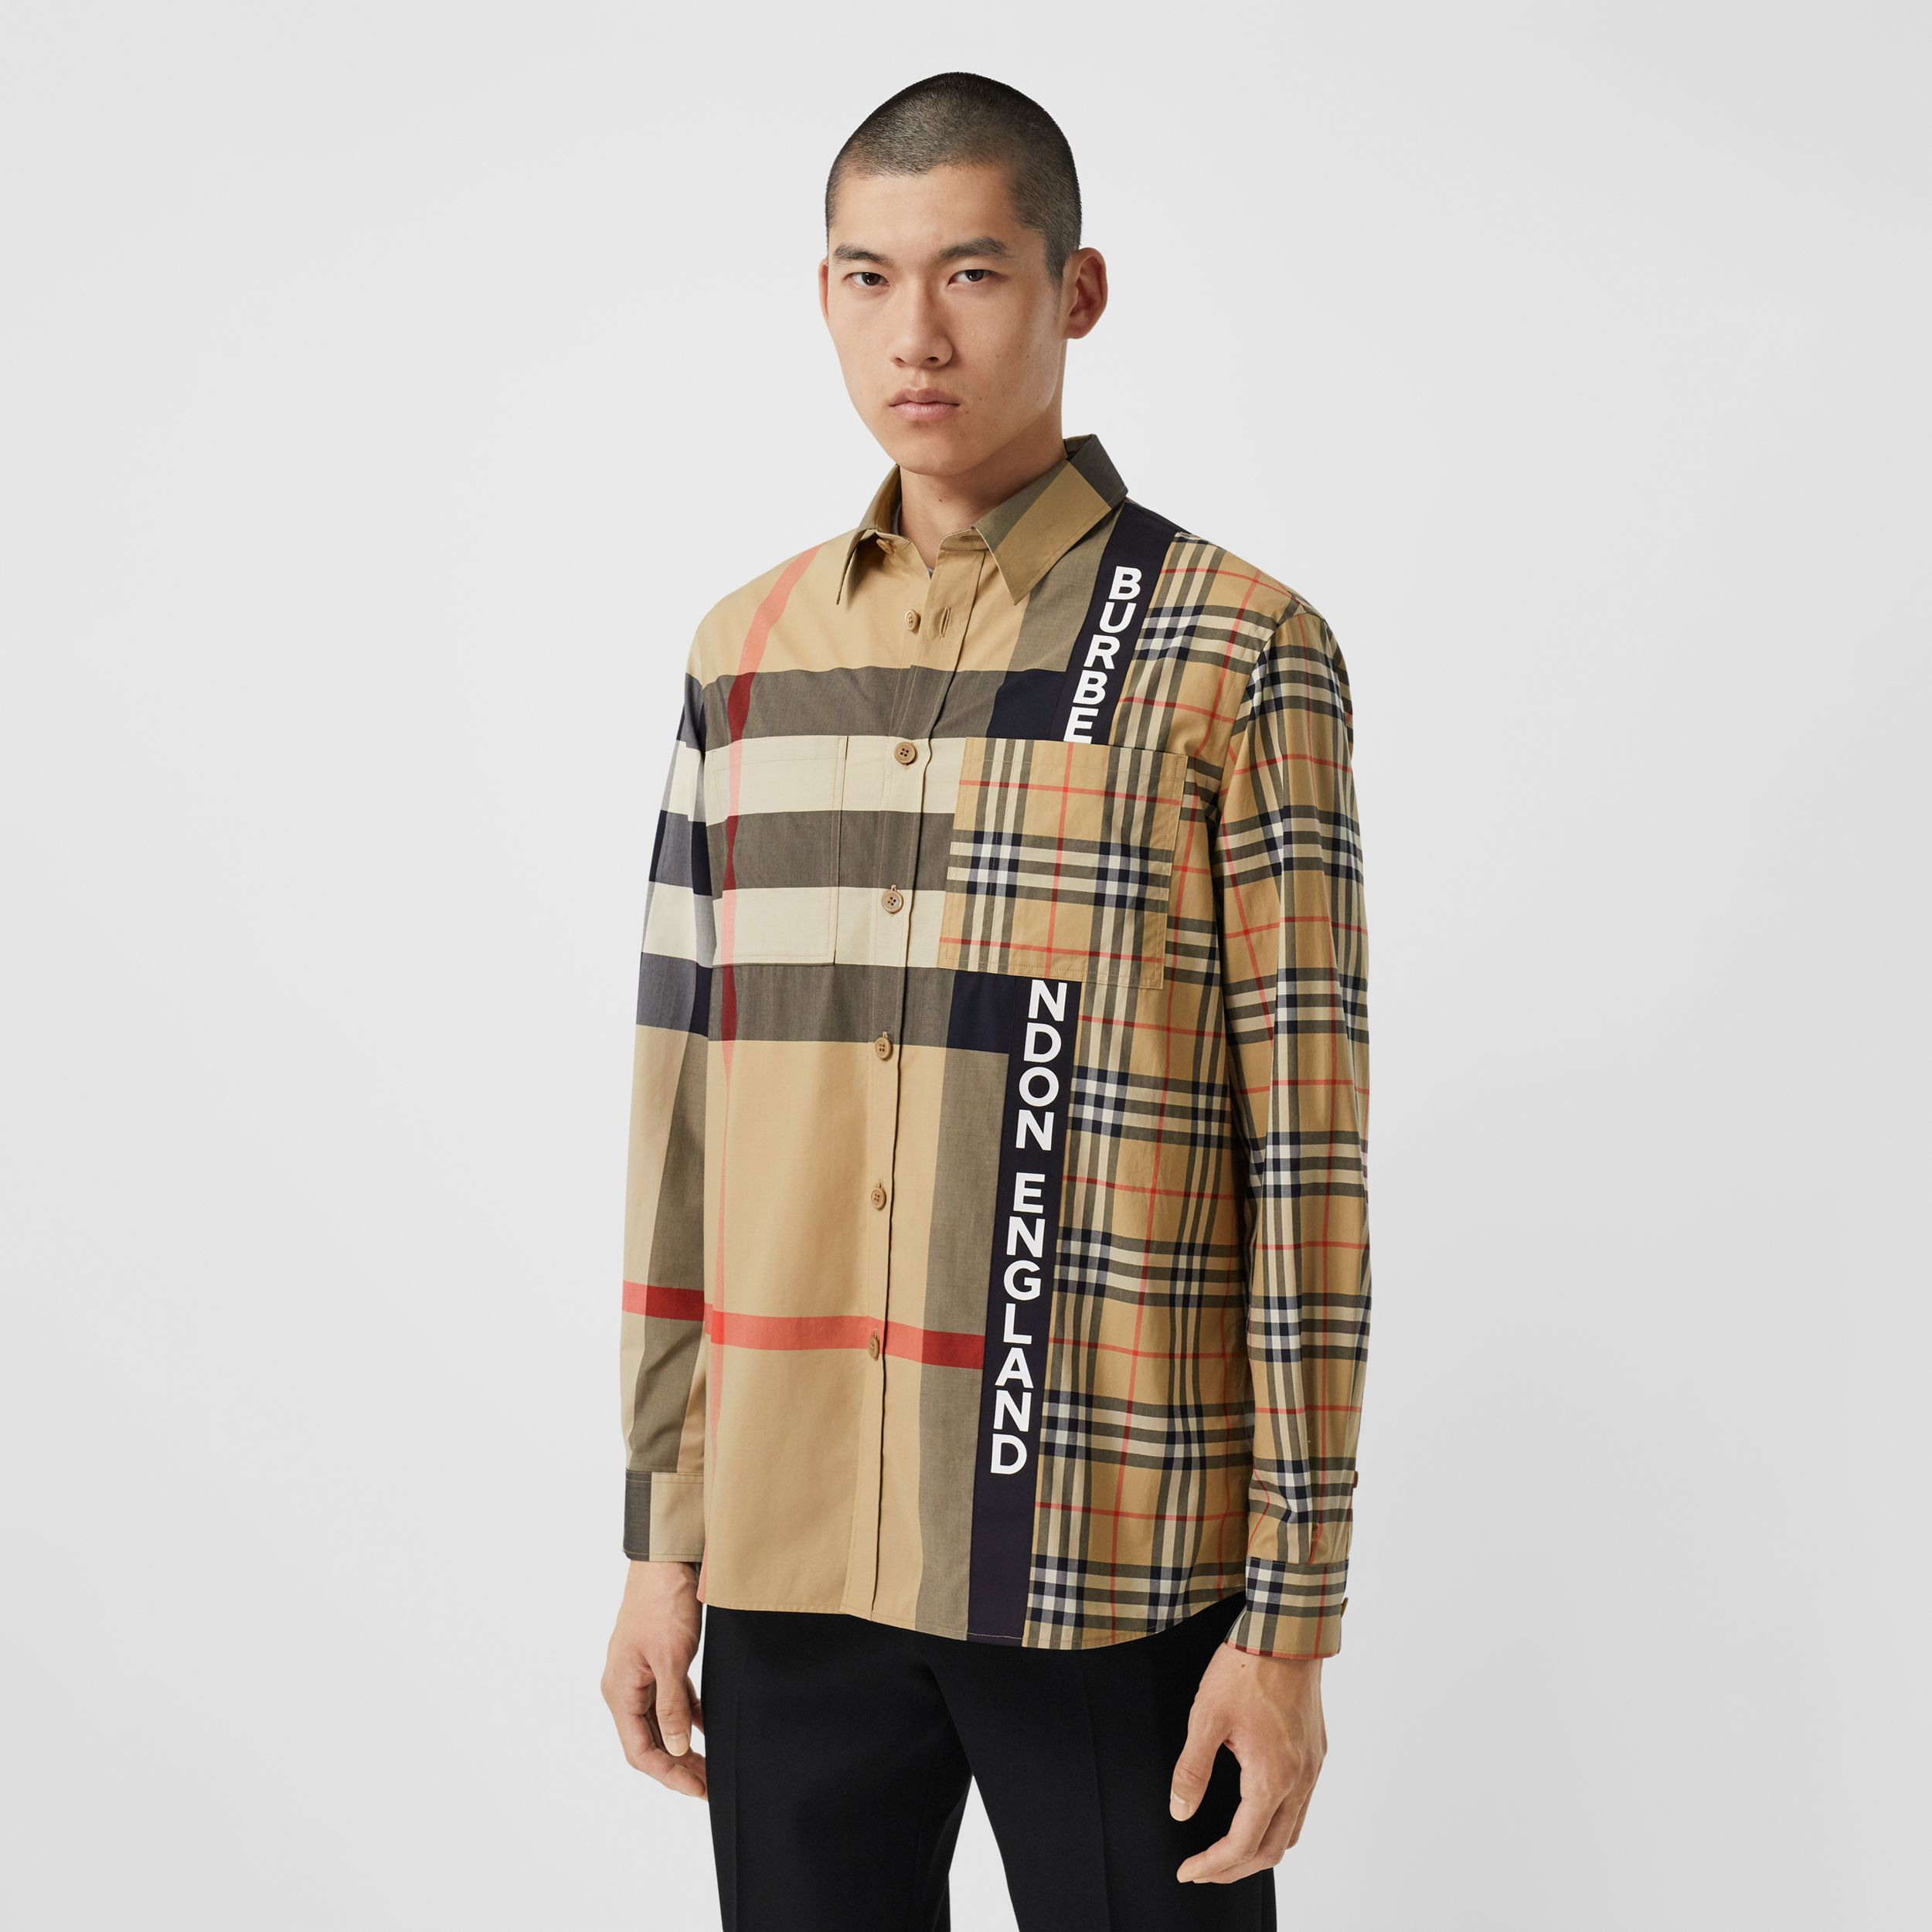 Logo Print Patchwork Check Cotton Oversized Shirt in Archive Beige - Men | Burberry - 1